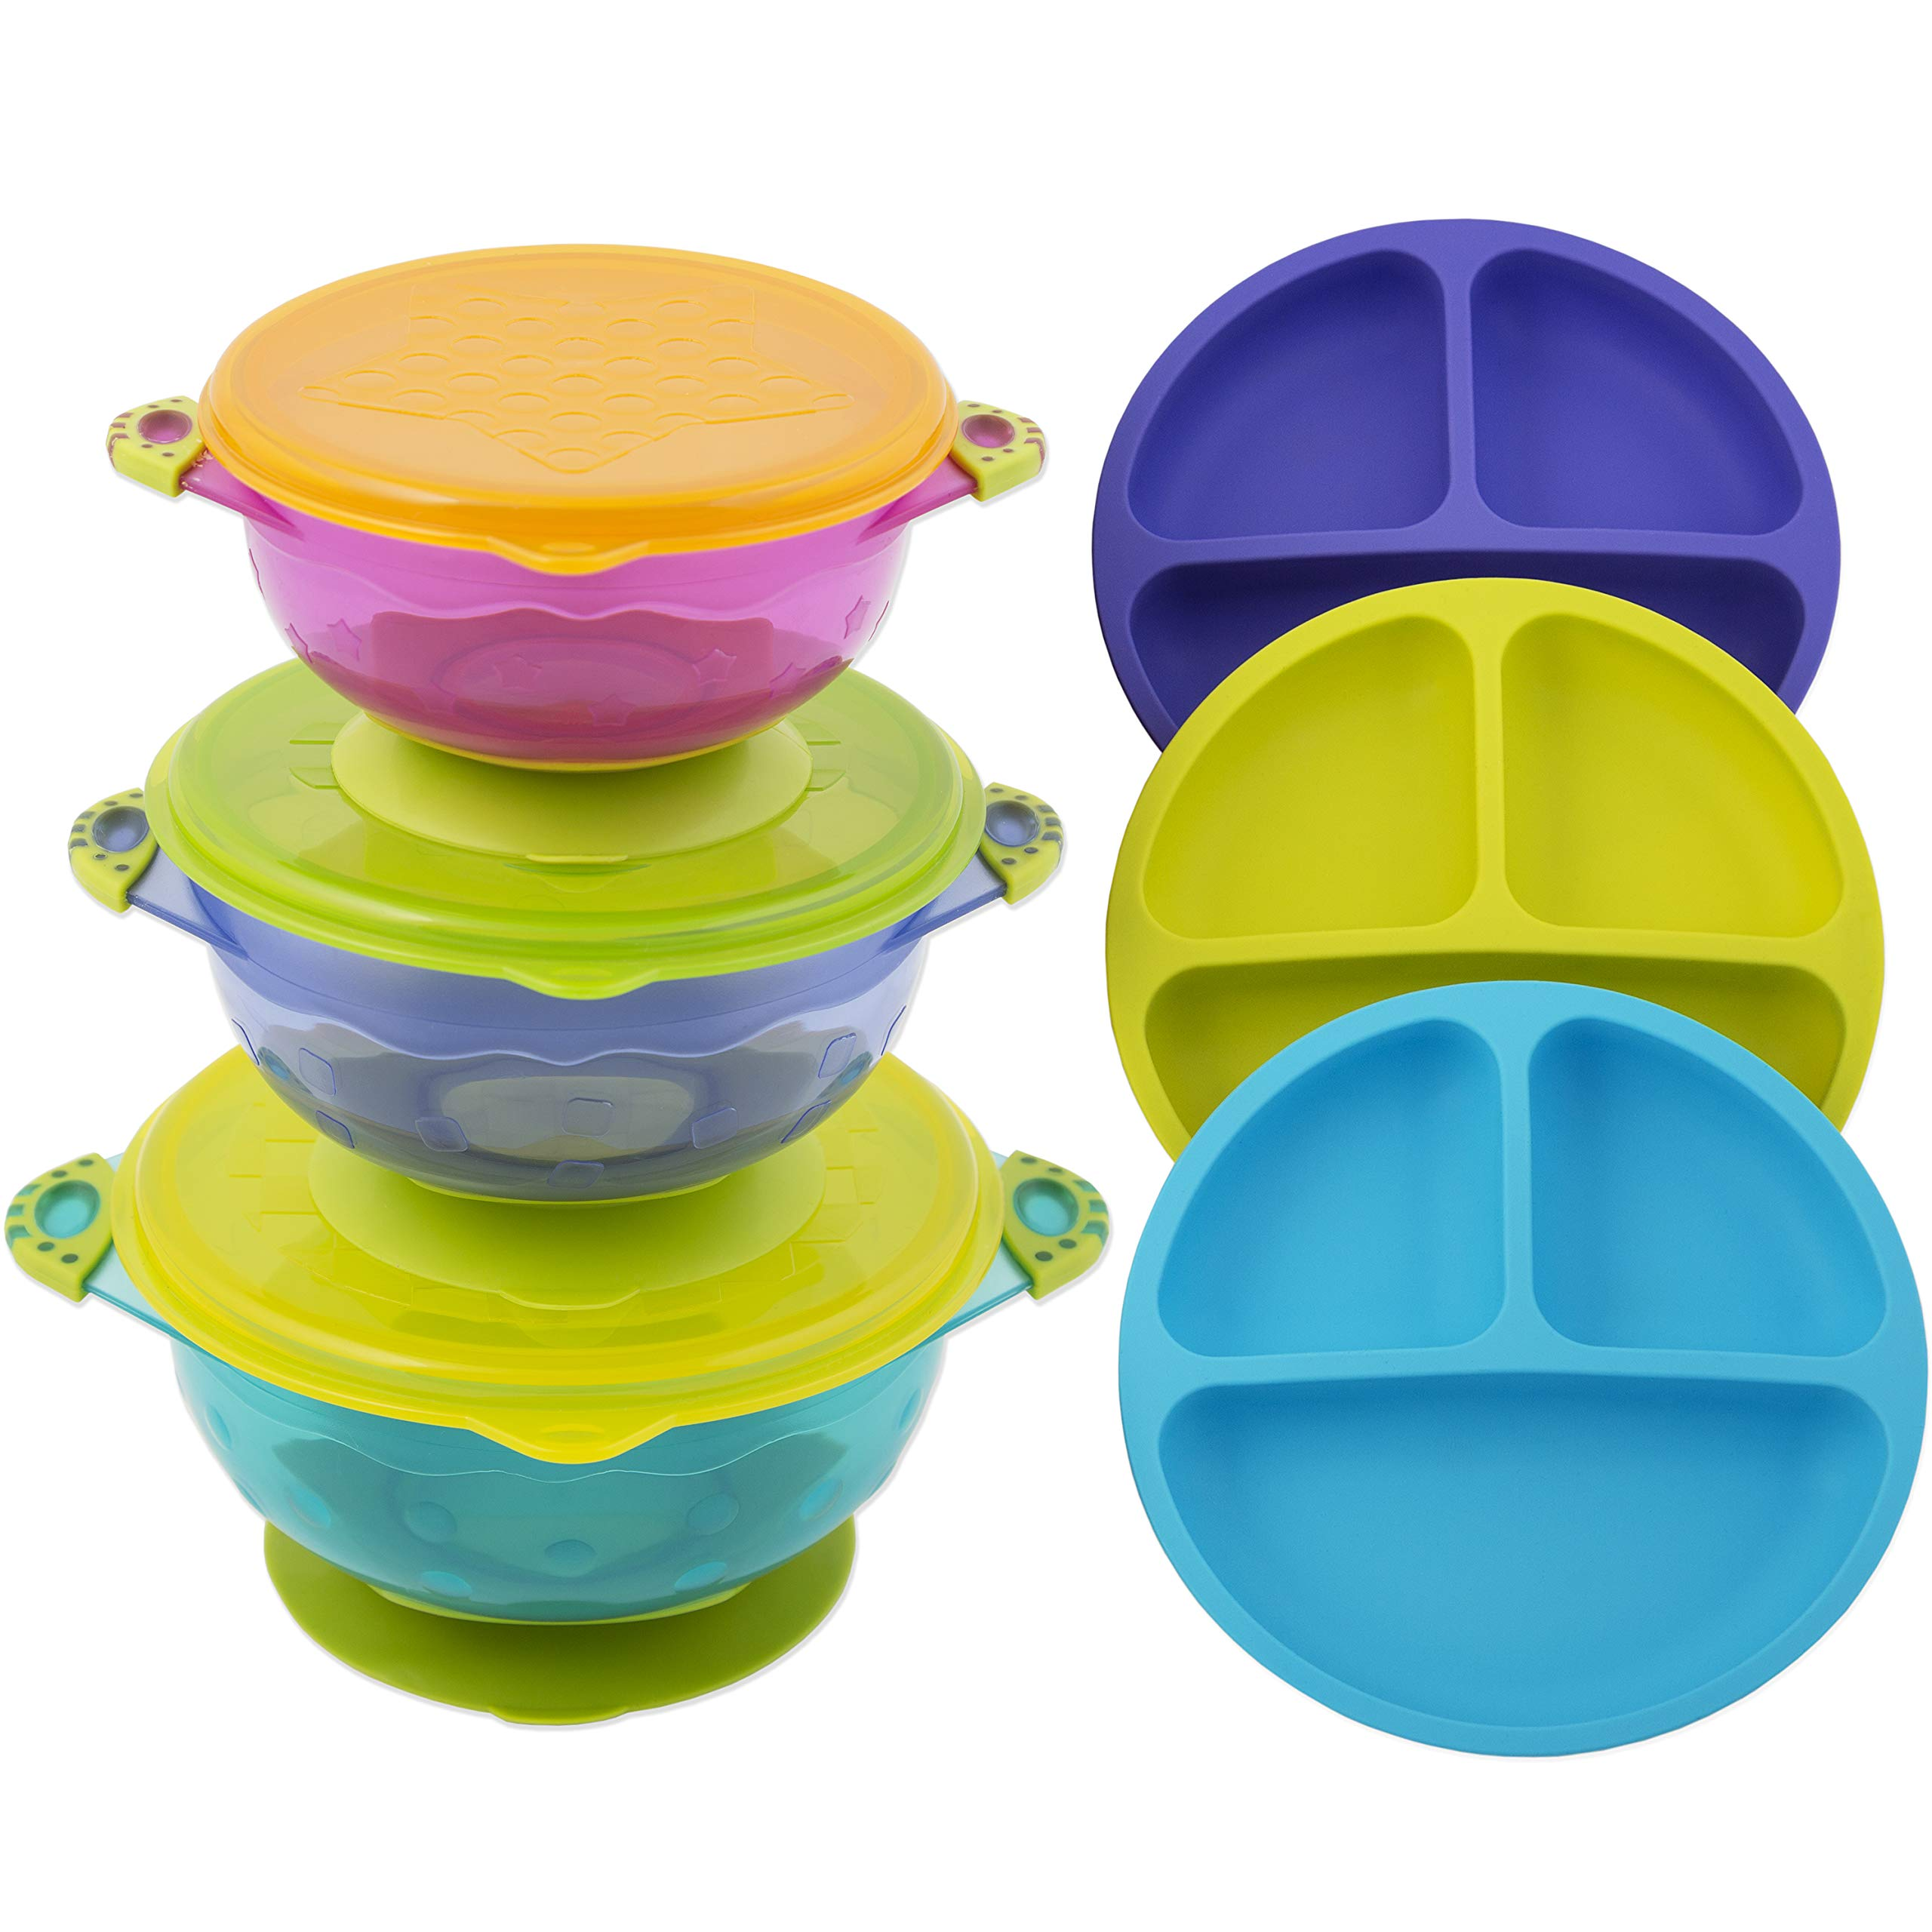 Toddler Plates and Bowls | Baby Bowls with Suction in 3 Different Sizes w/Air Tight Lid | Divided Silicone Plate - Unbreakable, Easy Clean & Perfect for Fussy Eaters | Baby Feeding Set by EVLA'S